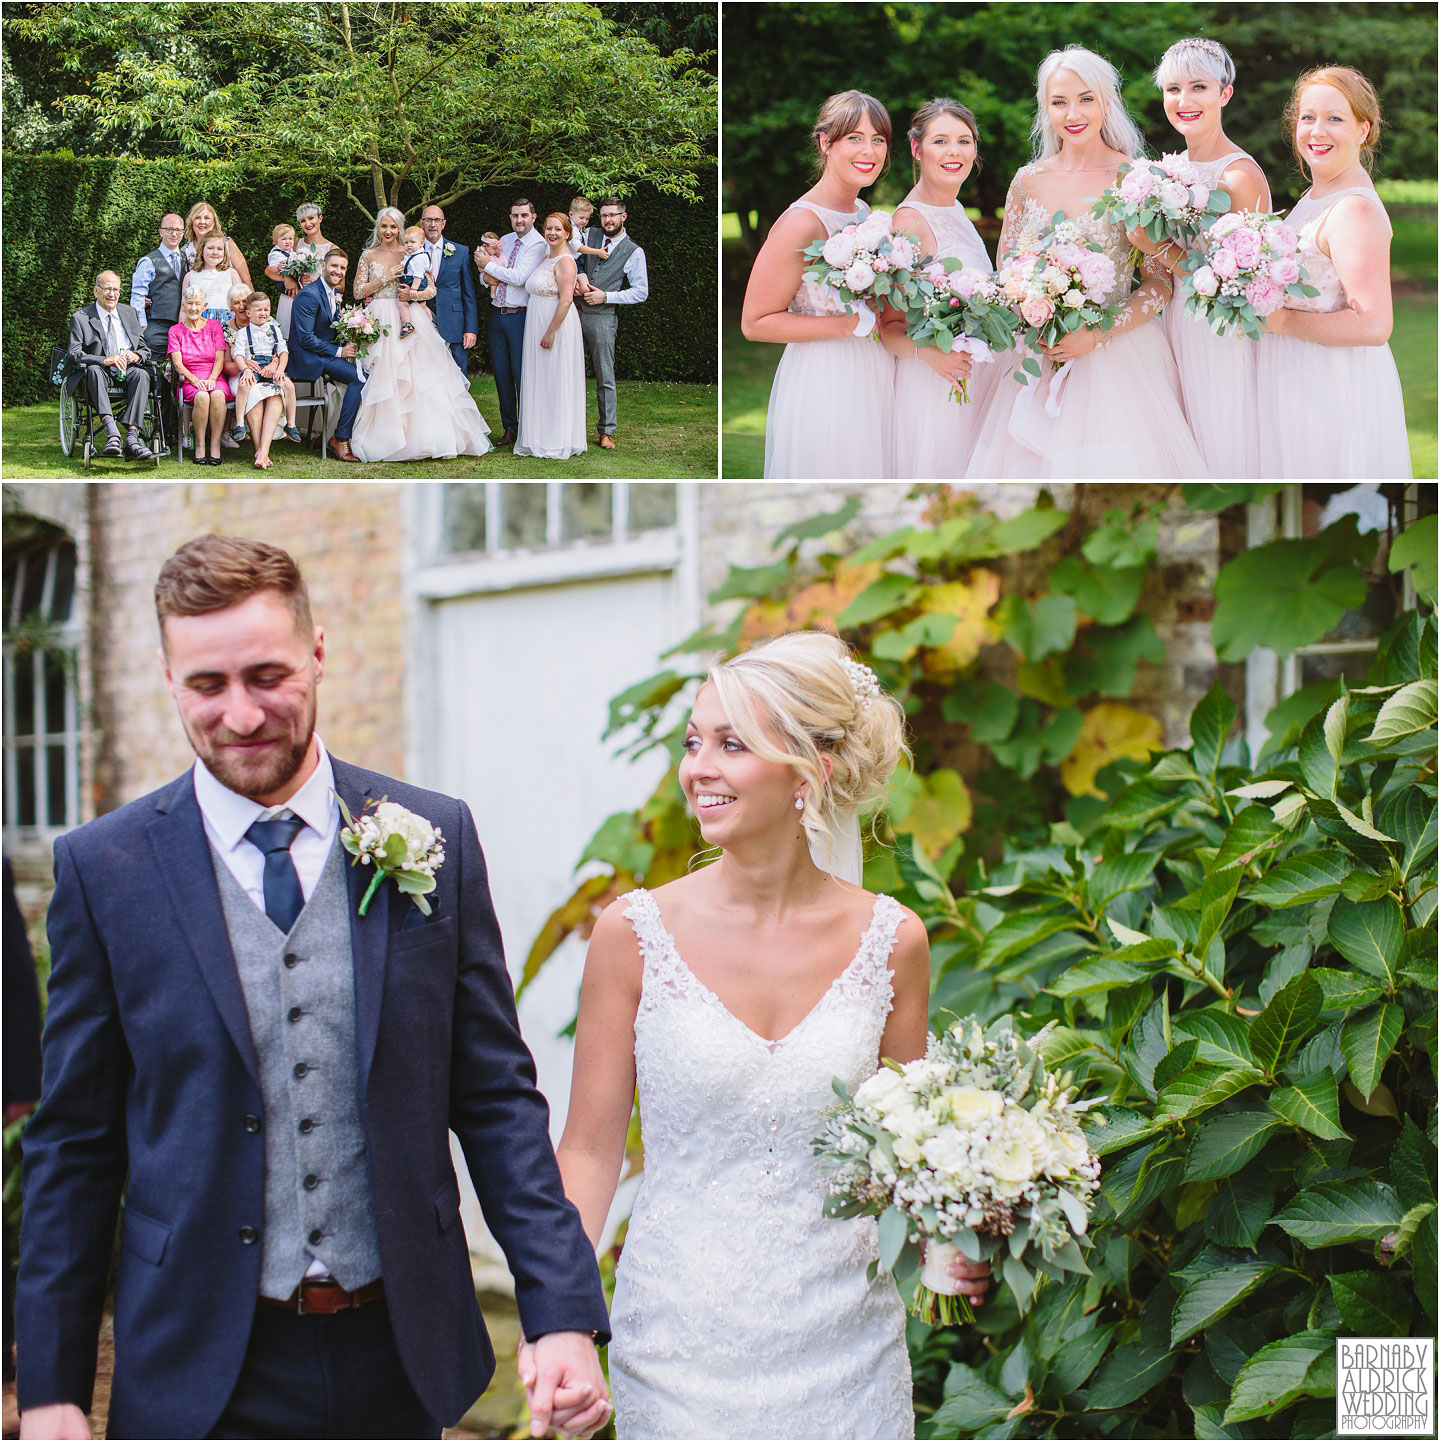 Bridal party portraits and groupshots A confetti moment at Saltmarshe Hall near Goole in East Yorkshire, Wedding photography at Saltmarshe Hall, East Yorkshire Wedding Photographer Barnaby Aldrick